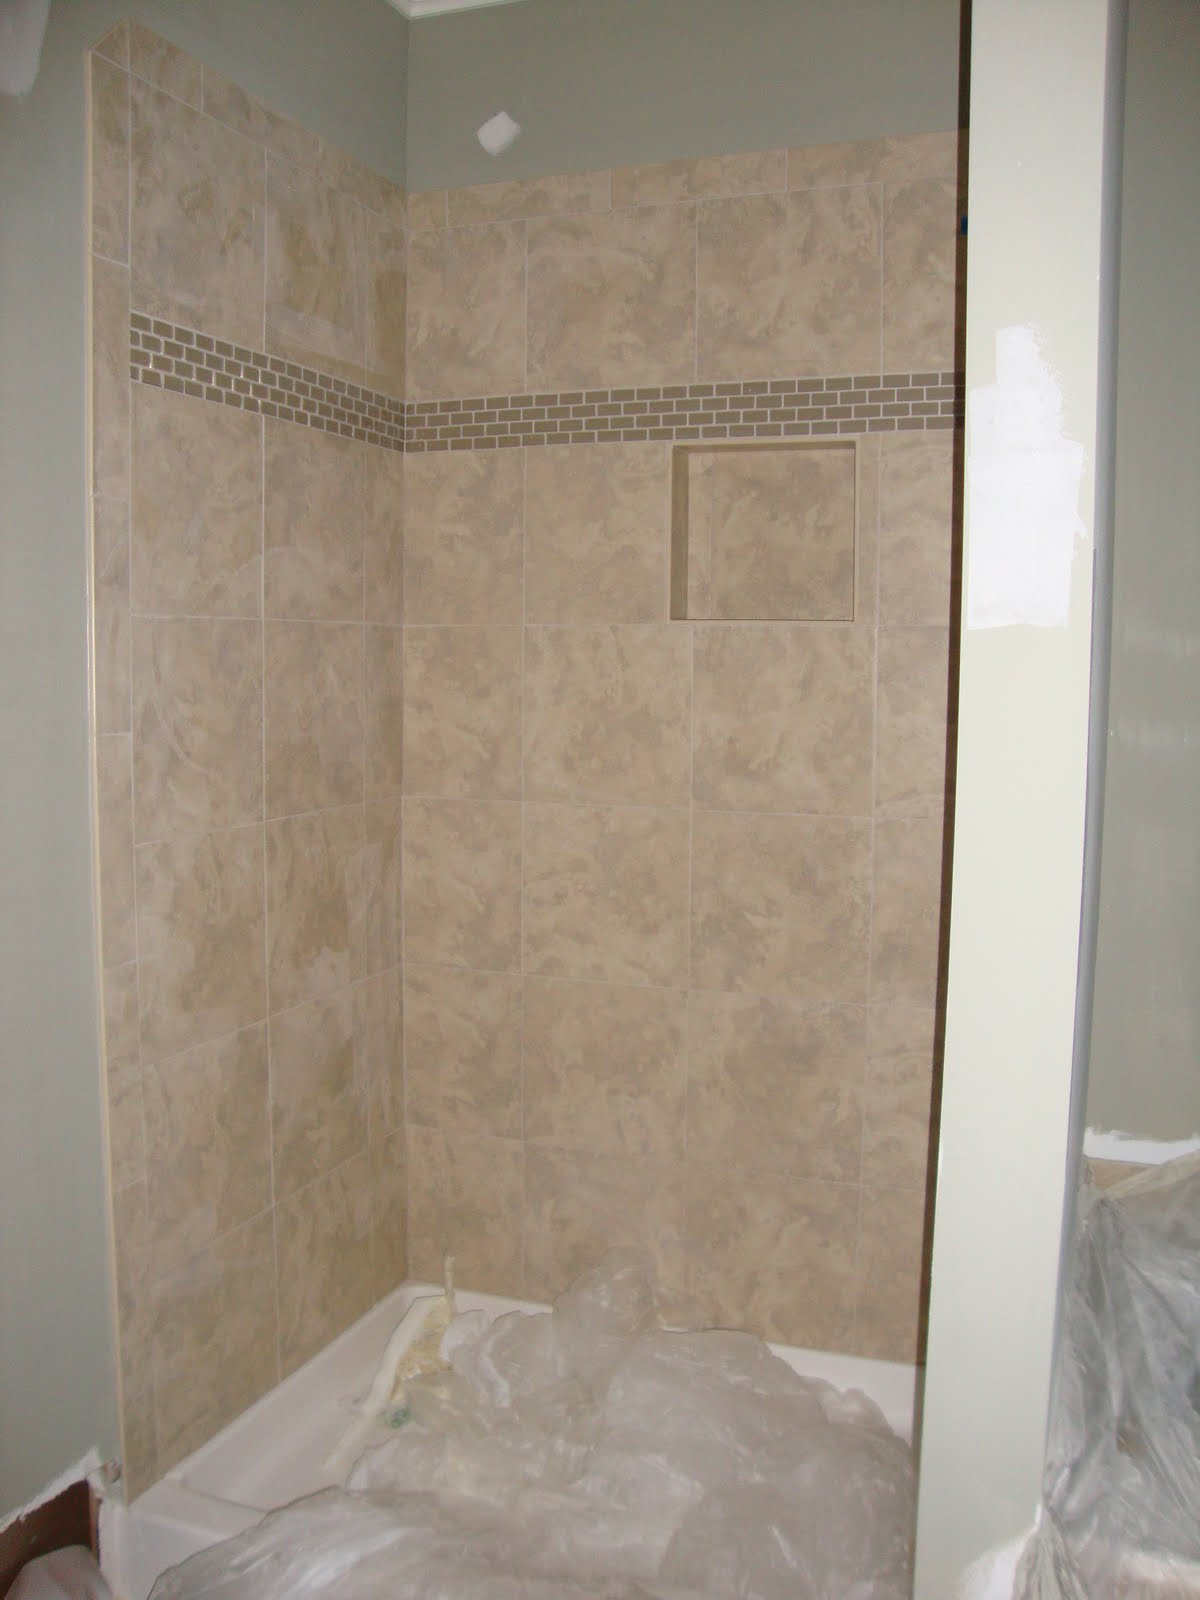 Home Building Project Tile Paint And Cabinets